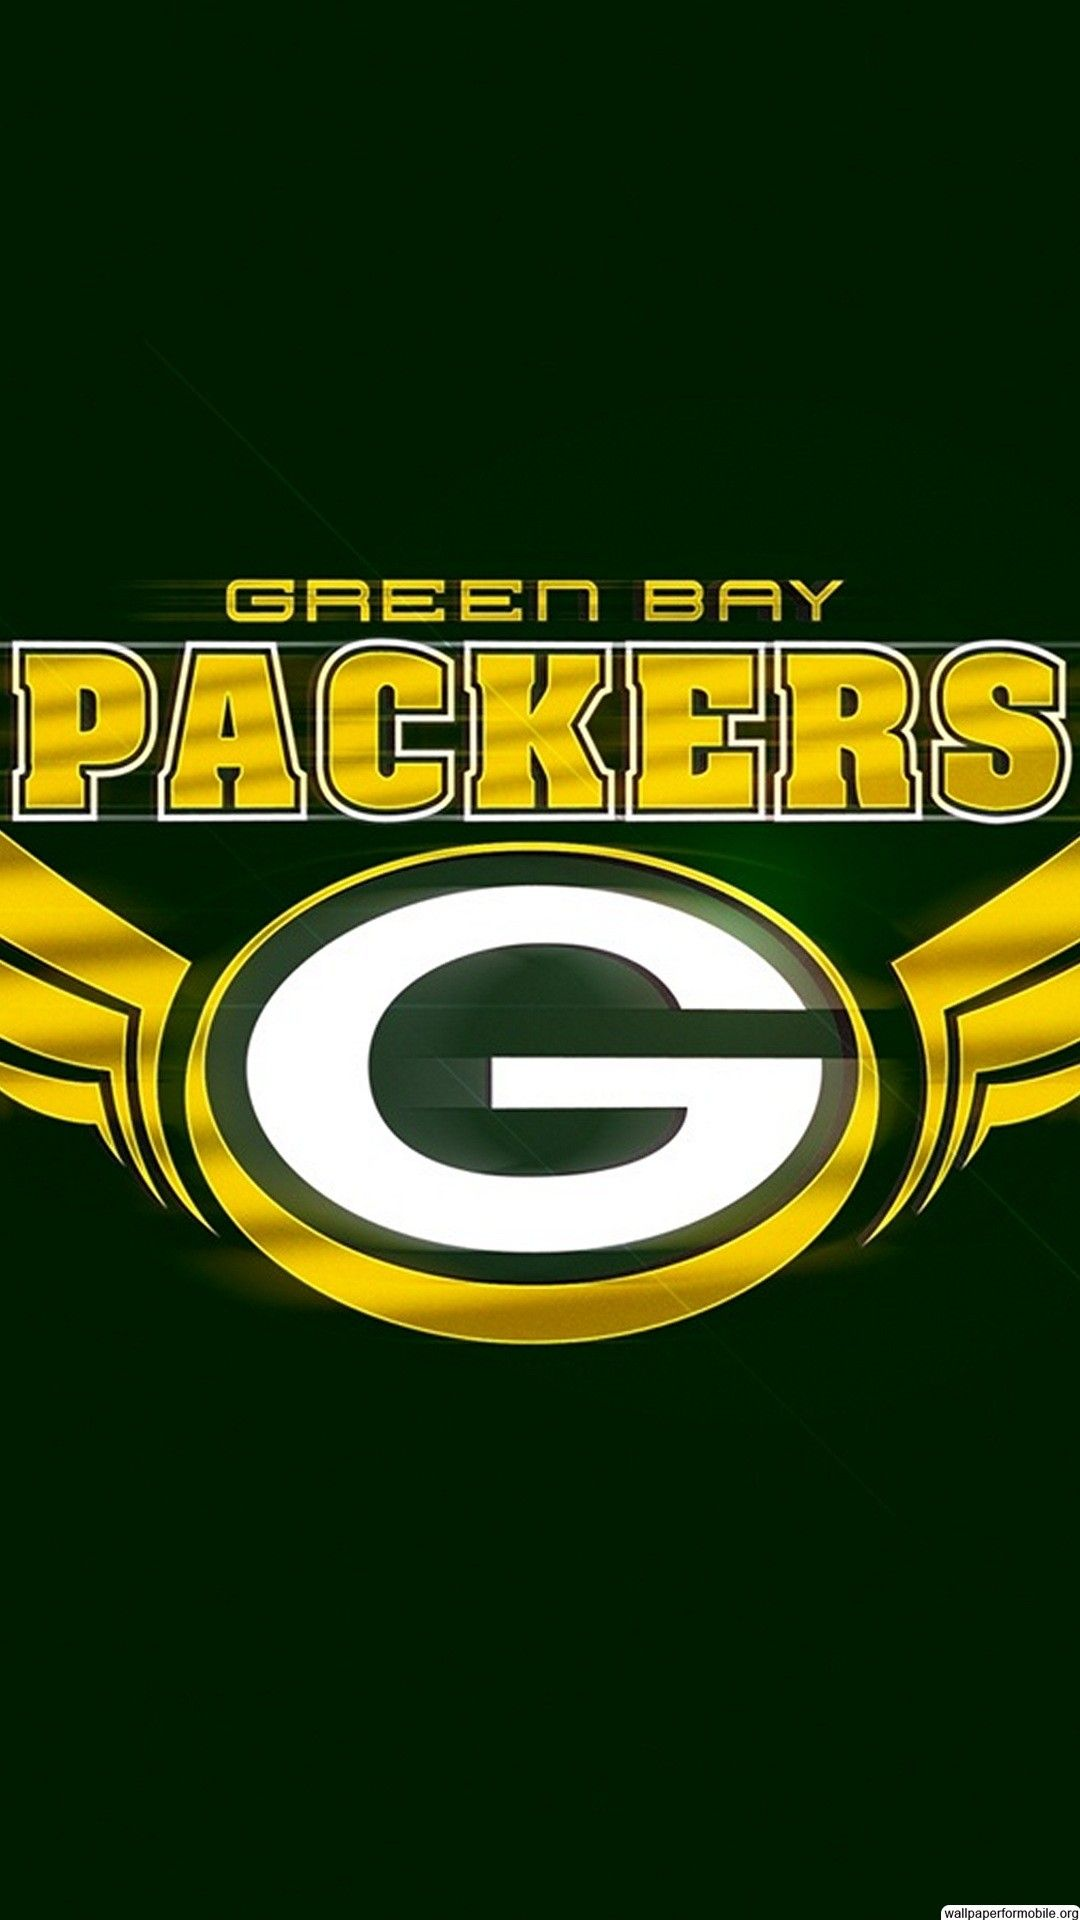 Aaron Rodgers Green Bay Packers Wallpaper In 2020 Green Bay Packers Wallpaper Green Bay Packers Phone Wallpaper